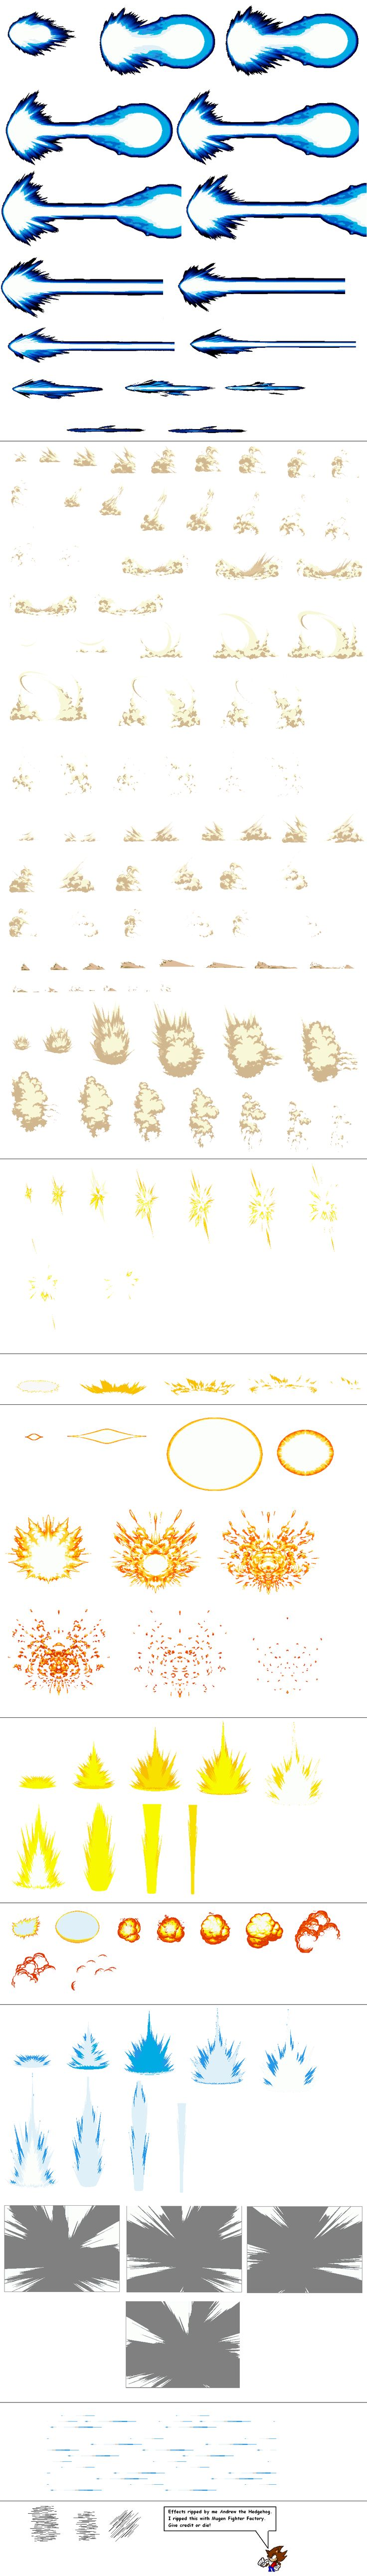 Ultimate Effects Sheet 1 by Xypter on deviantART ★    CHARACTER DESIGN REFERENCES™ (https://www.facebook.com/CharacterDesignReferences & https://www.pinterest.com/characterdesigh) • Love Character Design? Join the #CDChallenge (link→ https://www.facebook.com/groups/CharacterDesignChallenge) Share your unique vision of a theme, promote your art in a community of over 50.000 artists!    ★